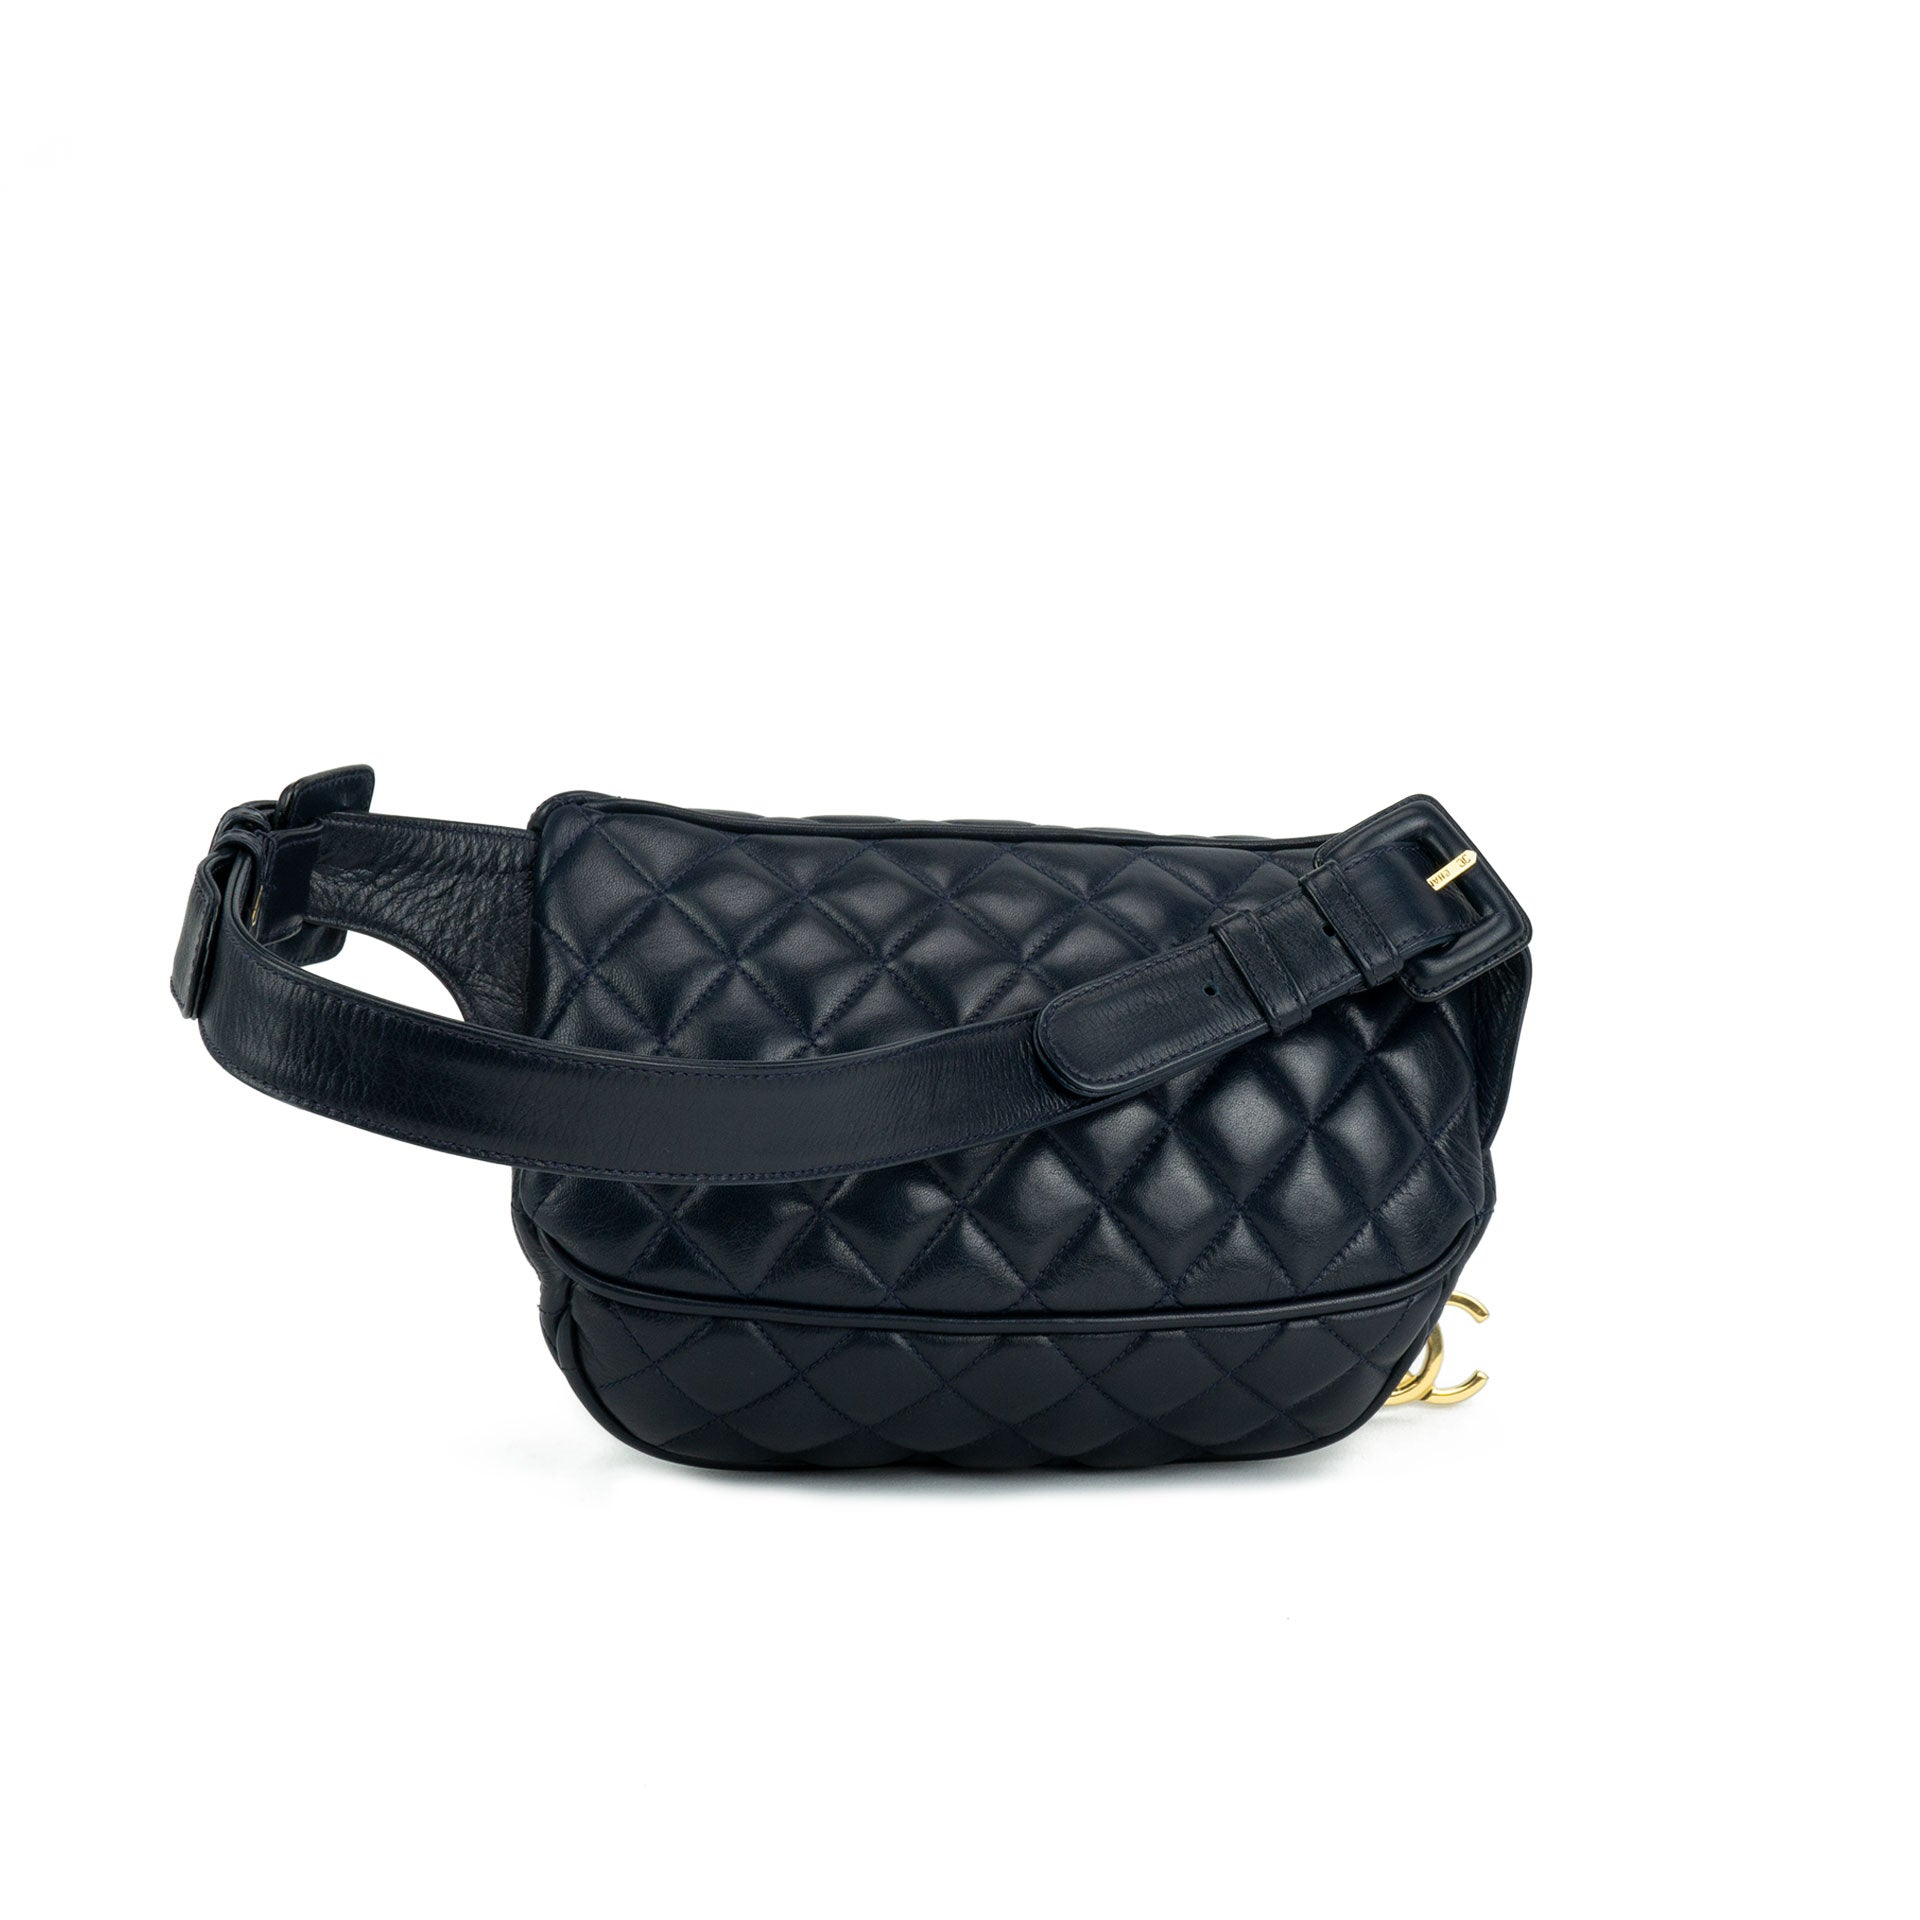 Chanel Navy Quilted Lambskin Vintage Fanny Pack